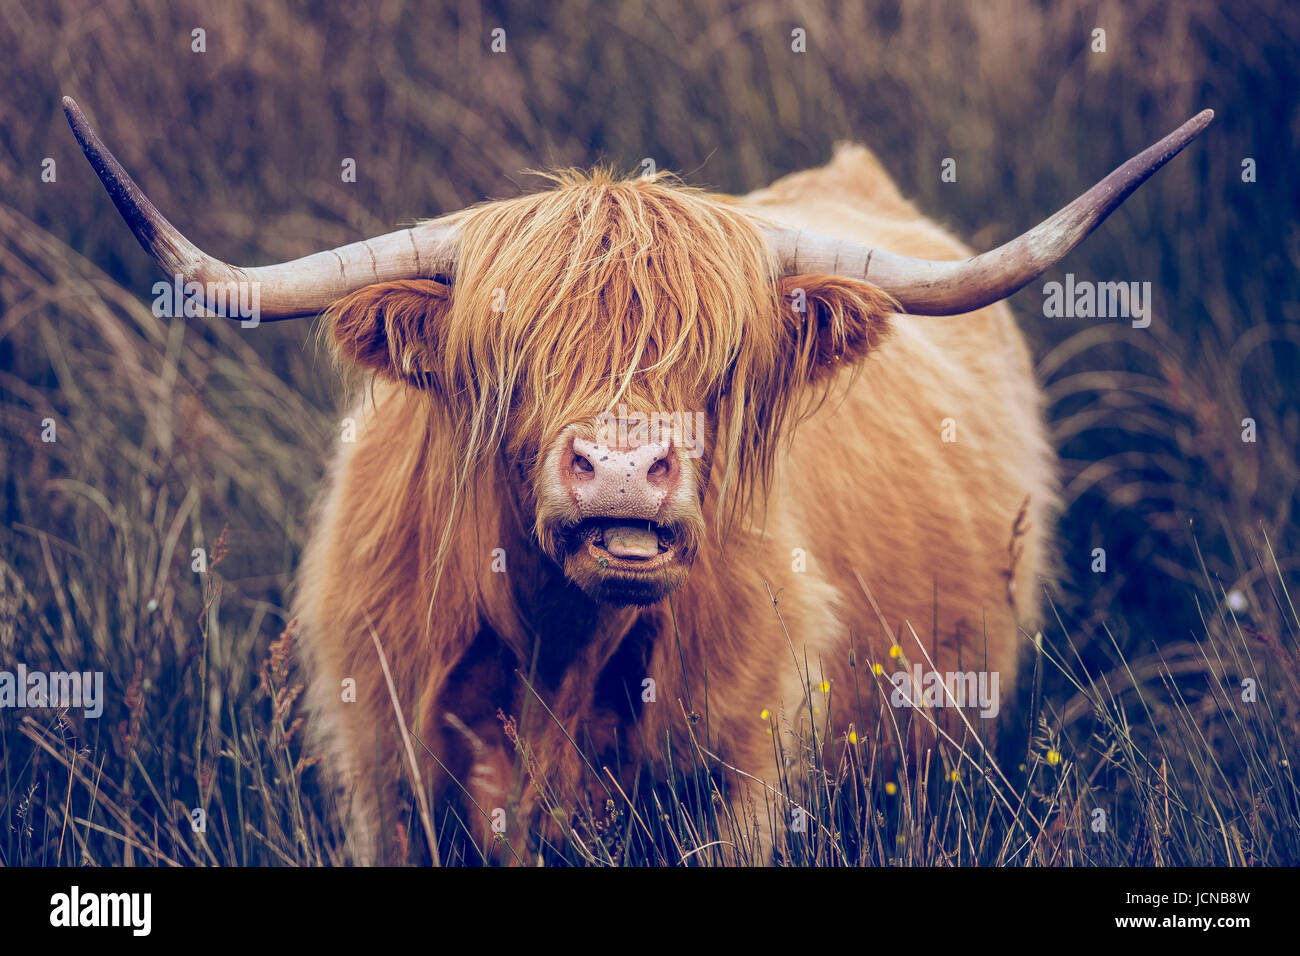 Highland Cow with long horns grazing in the Peak District near Baslow Edge and Curbar Edge - Stock Image